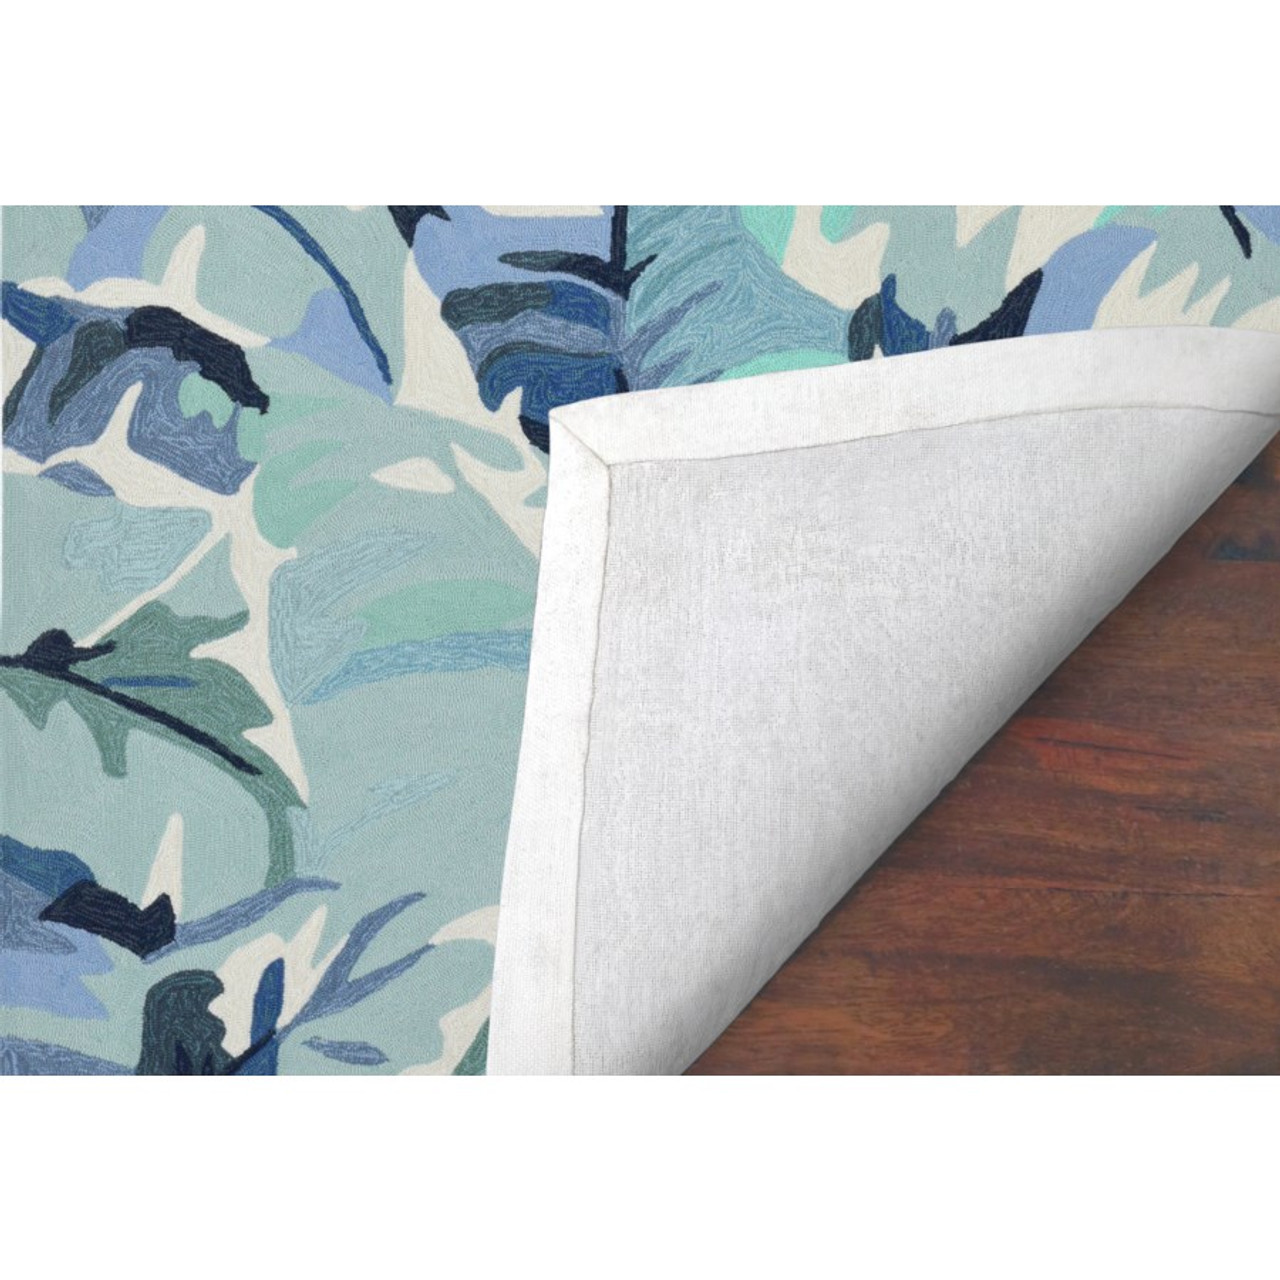 Blue Capri Palm Leaf Indoor/Outdoor Rug - Backing